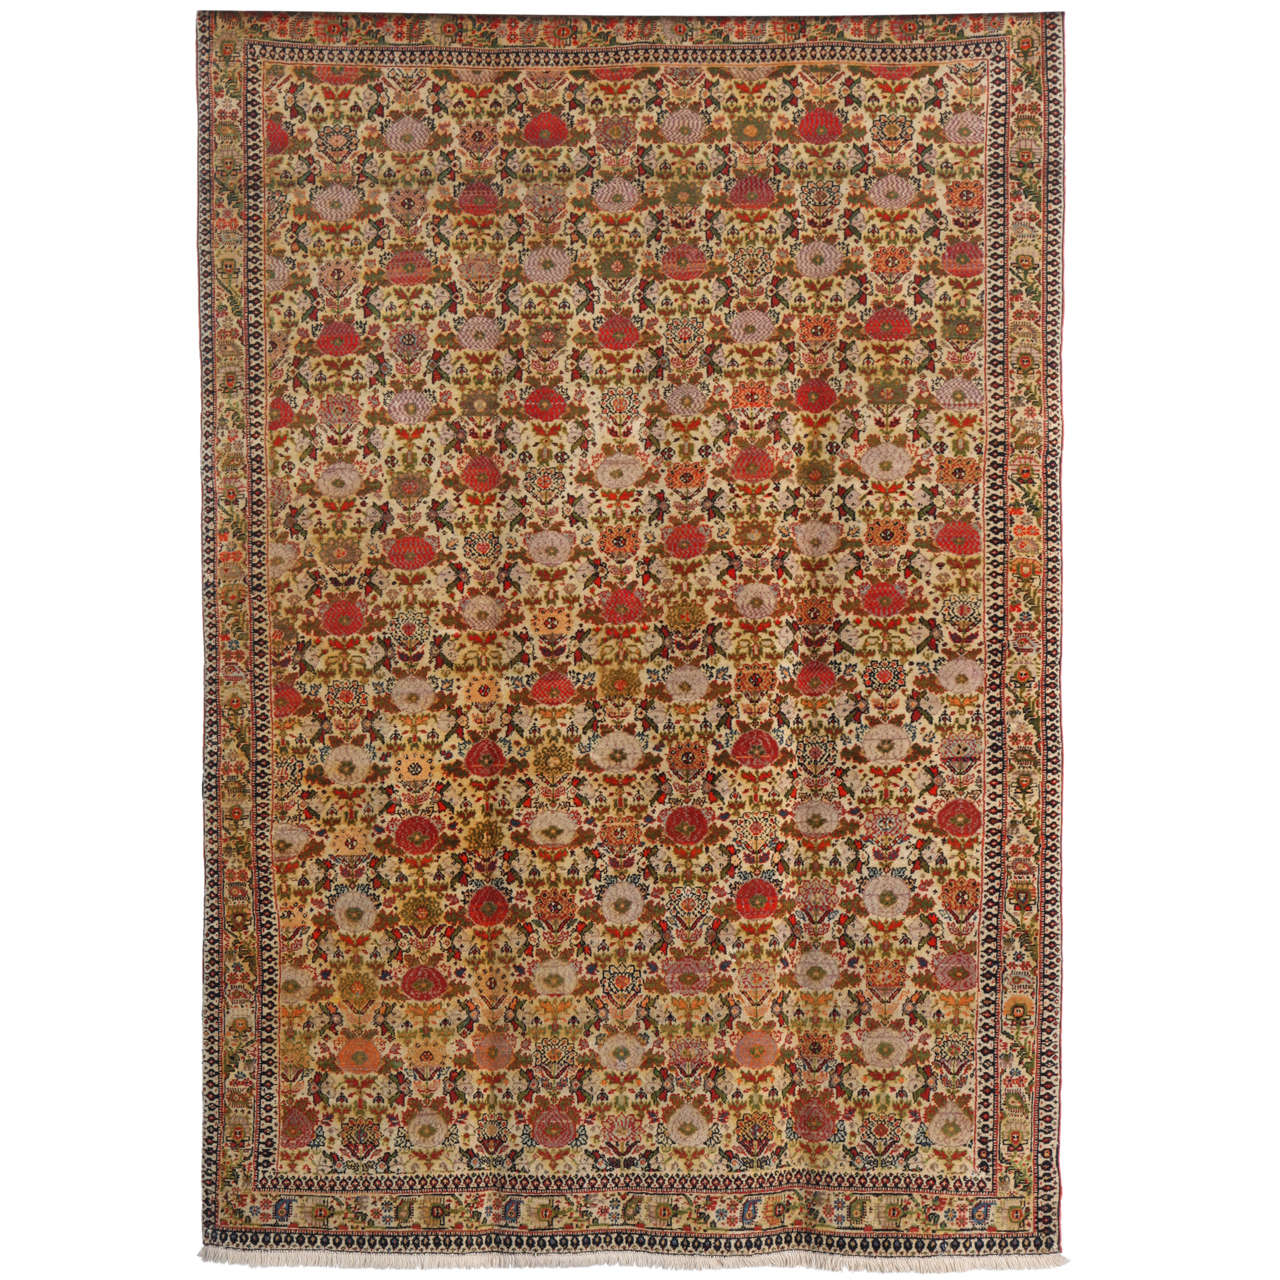 Persian Mishan Malayer Carpet with Wool Pile and Vegetable Dyes, circa 1890 For Sale